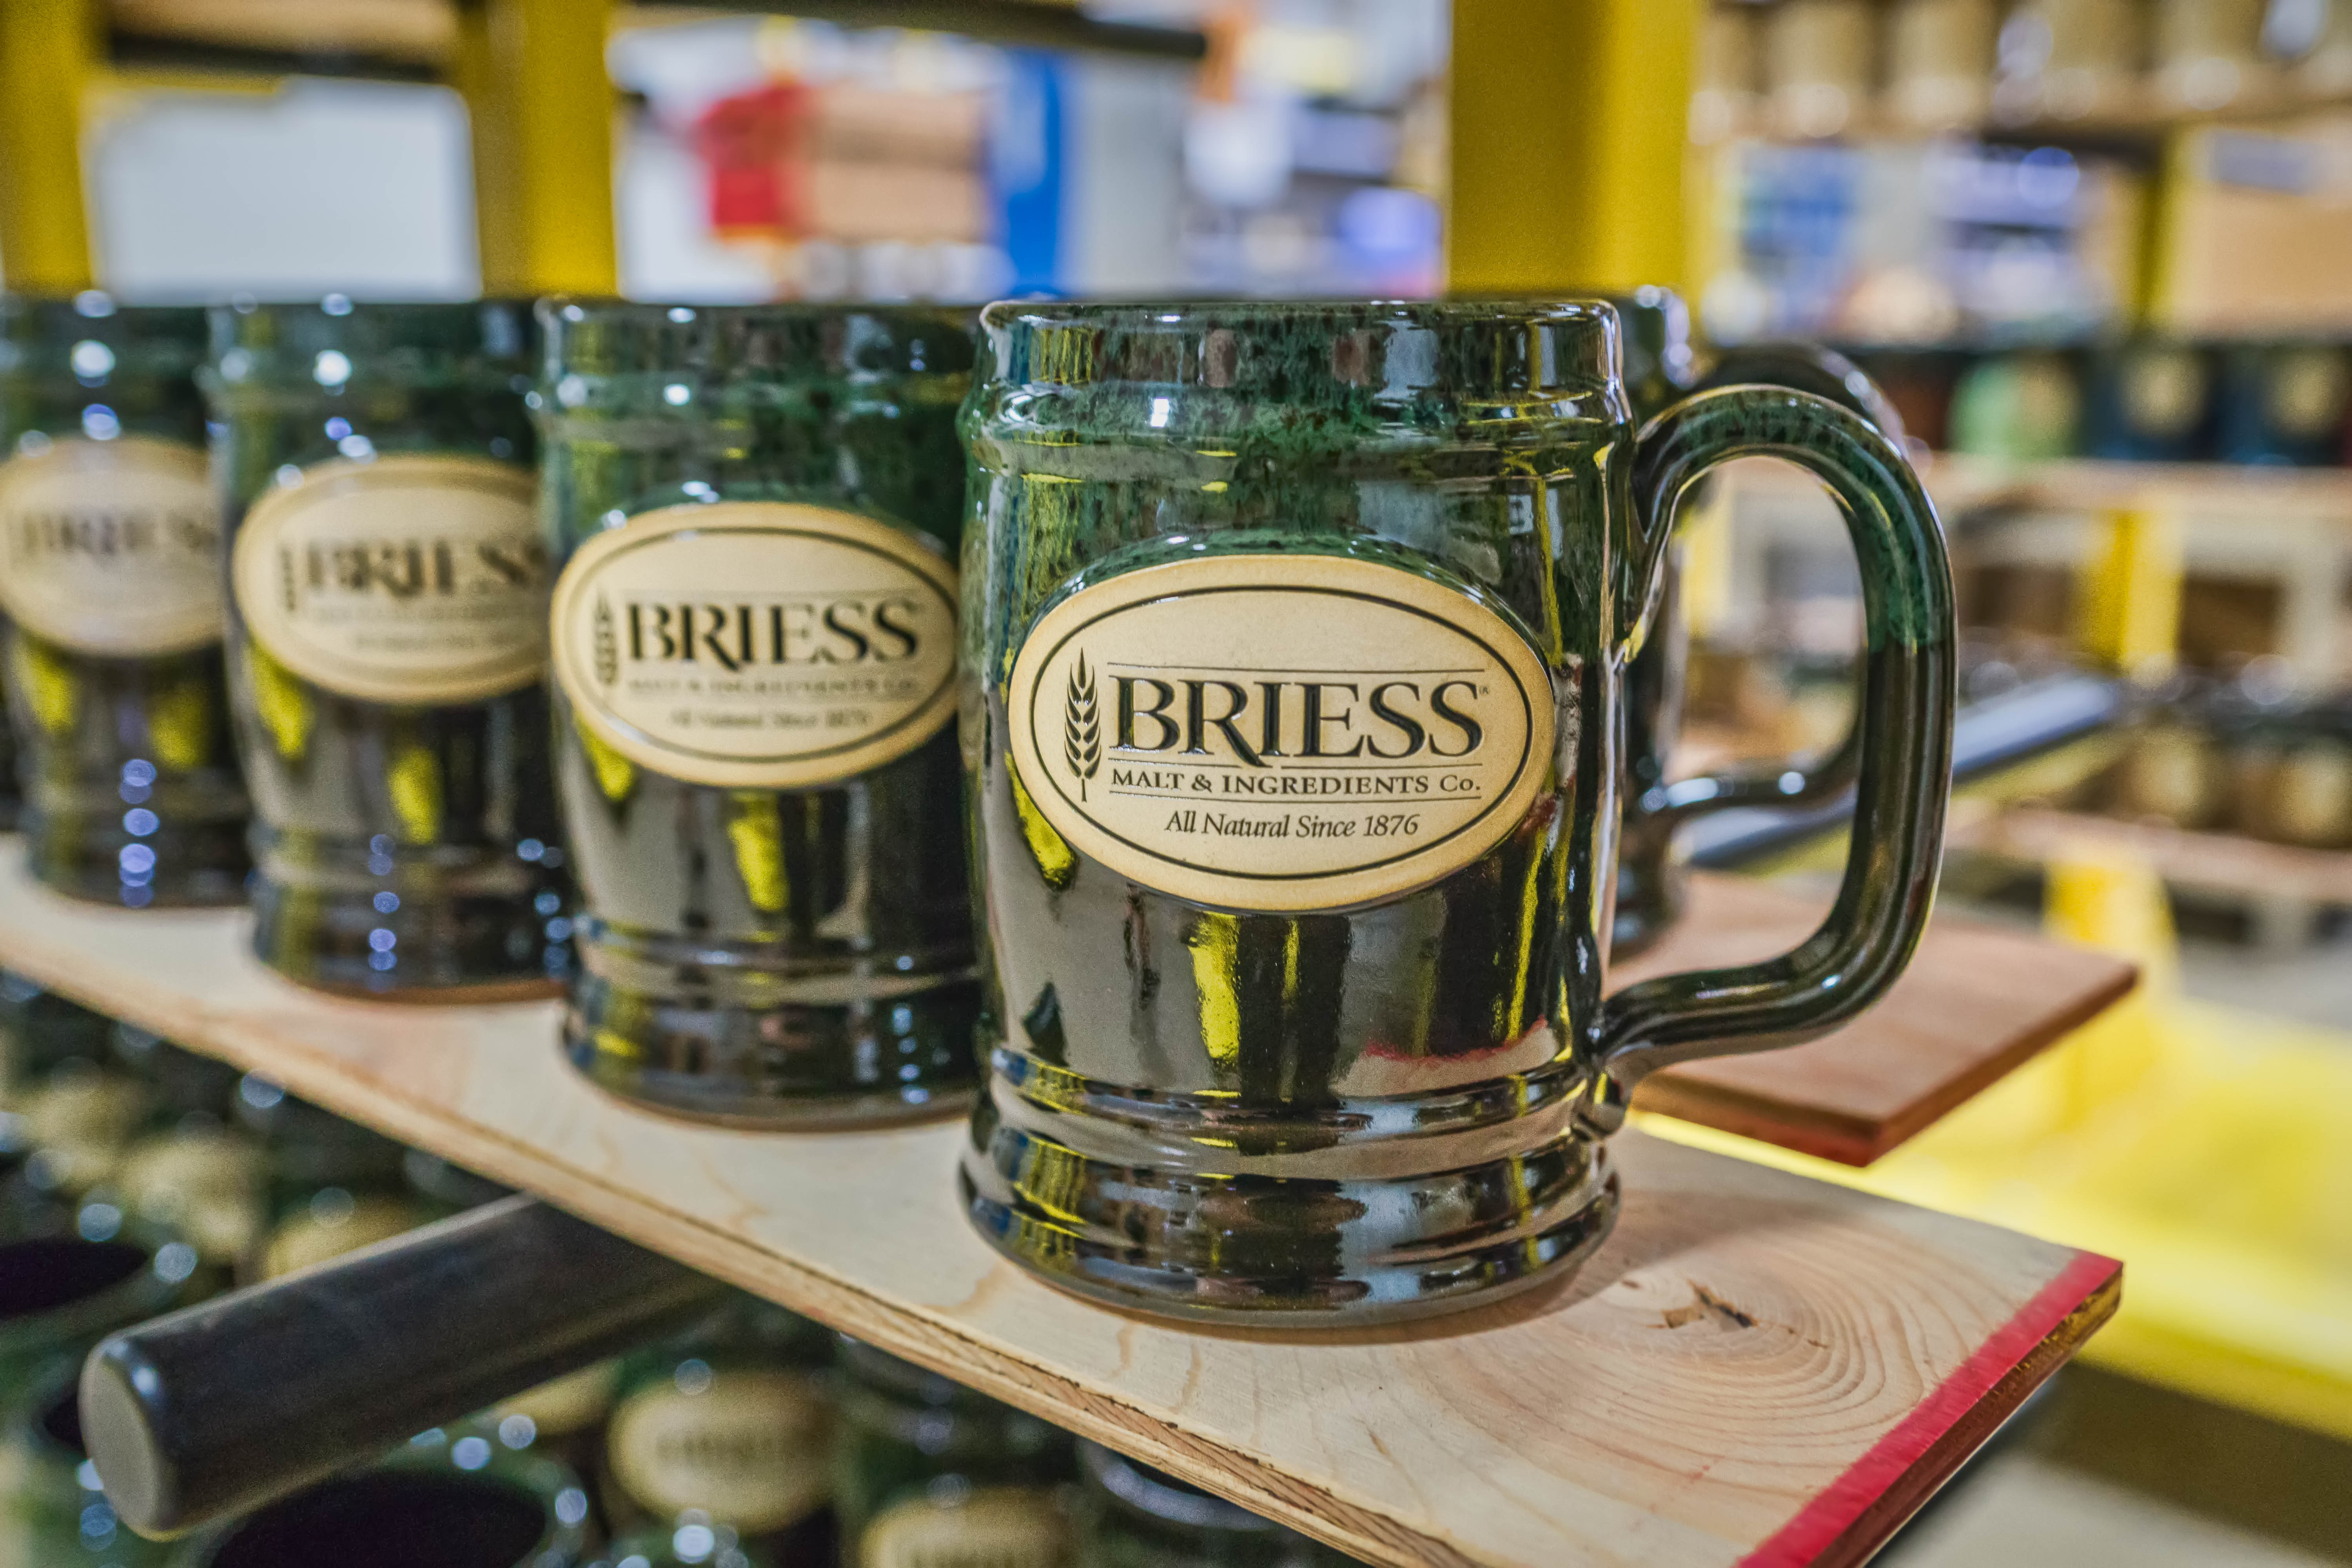 Briess: The company supporting breweries across America